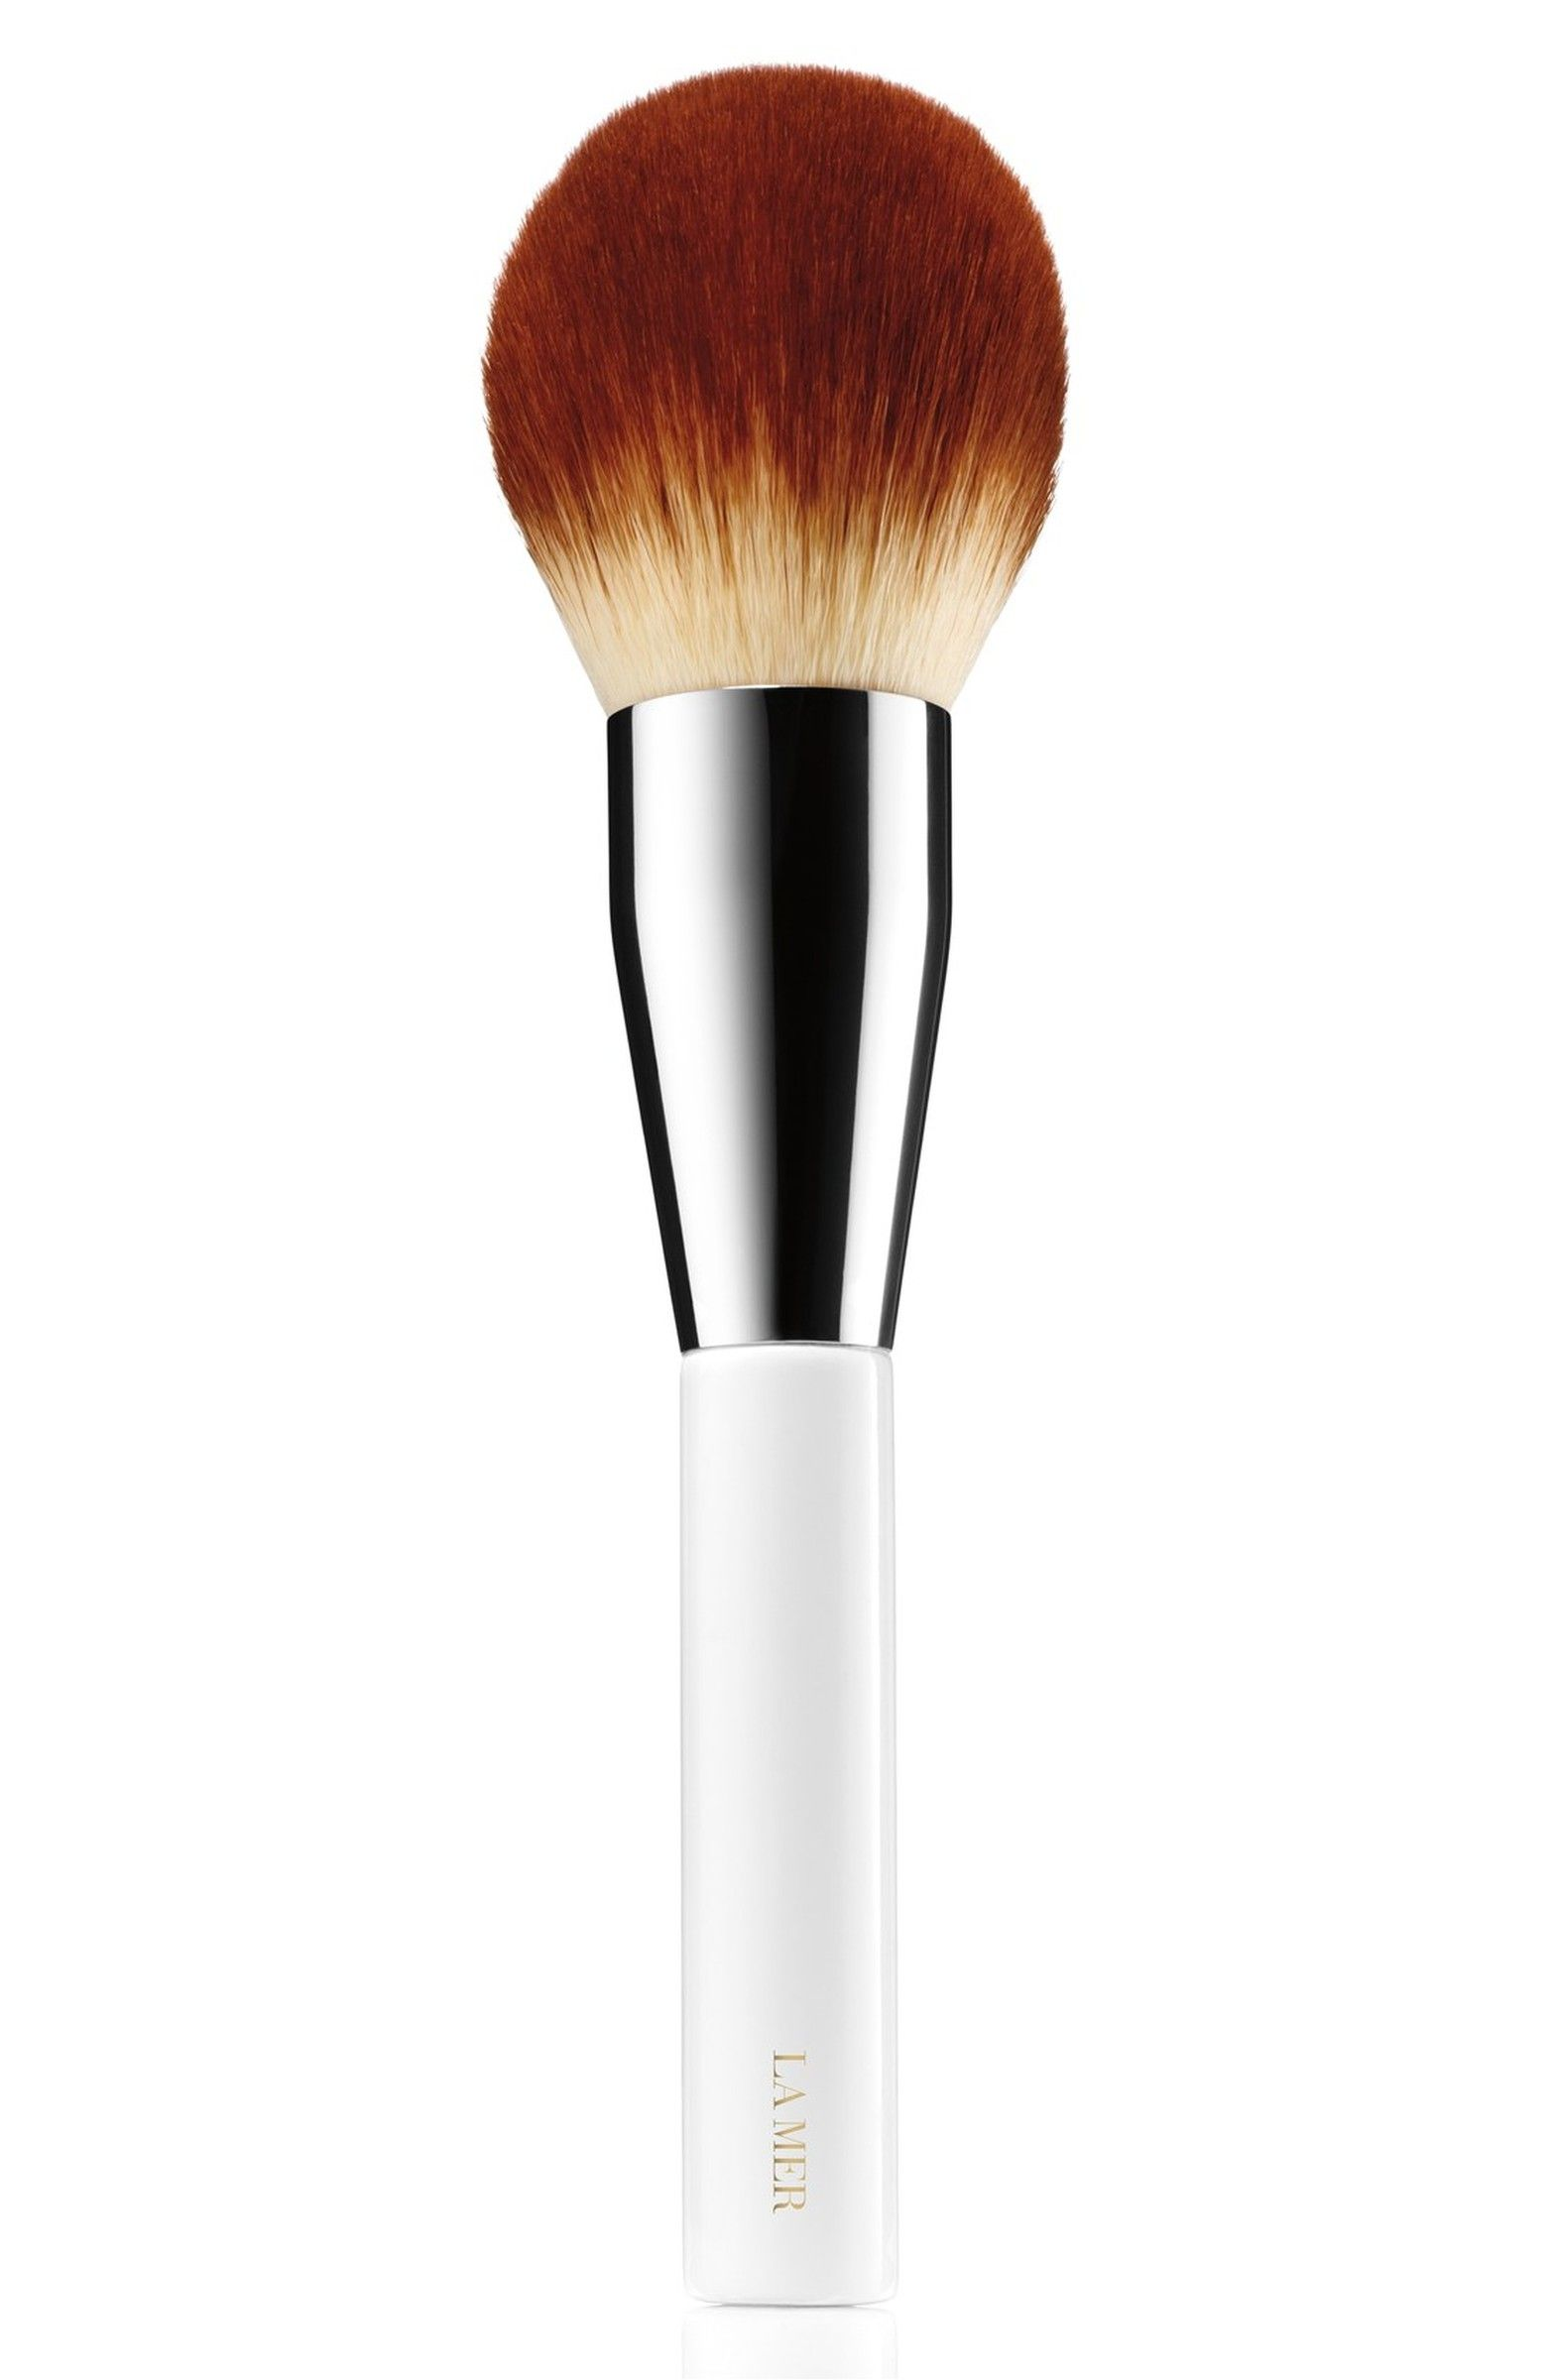 Airbrush Finish Fluid Foundation Brush Dior Sephora